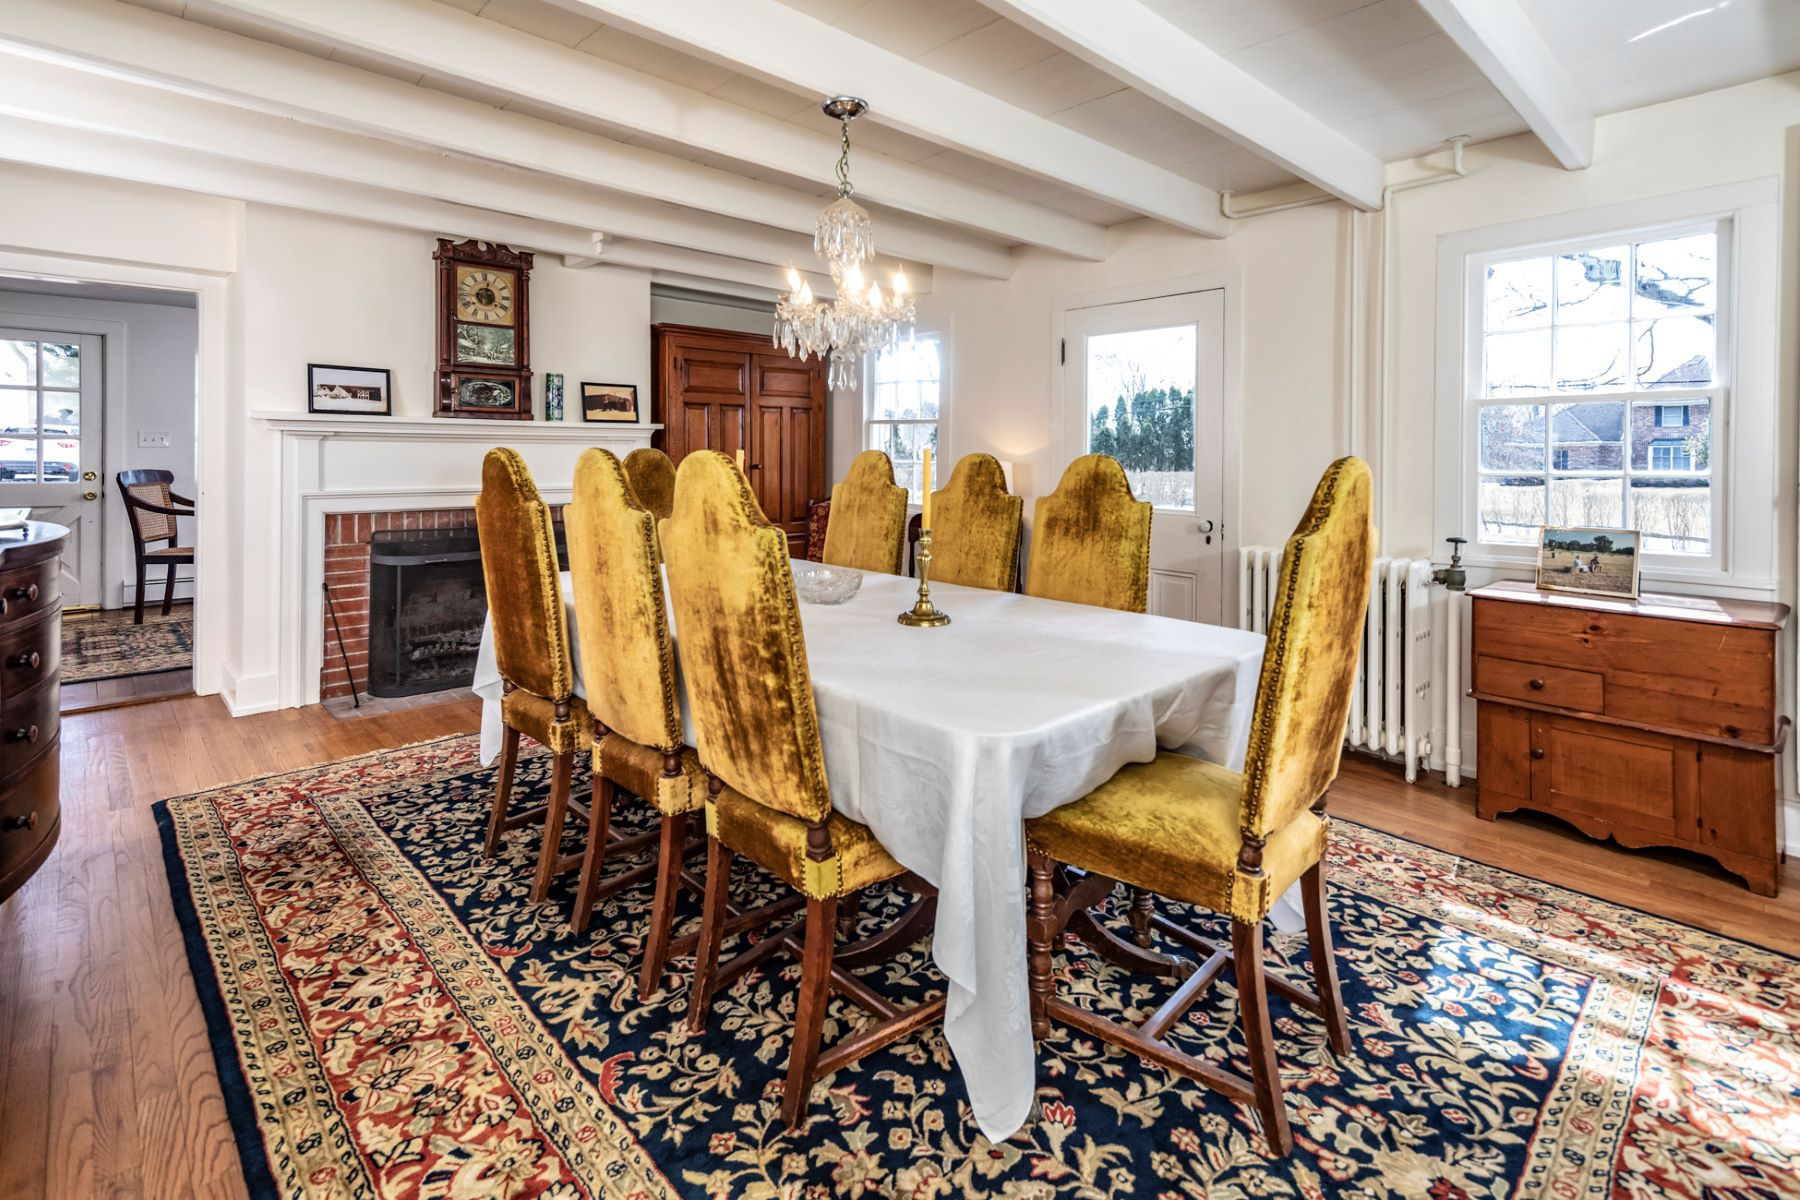 Additional photo for property listing at Hedgecroft: Available For The First Time Since 1968 313 Pennington Titusville Road, Pennington, New Jersey 08534 United States